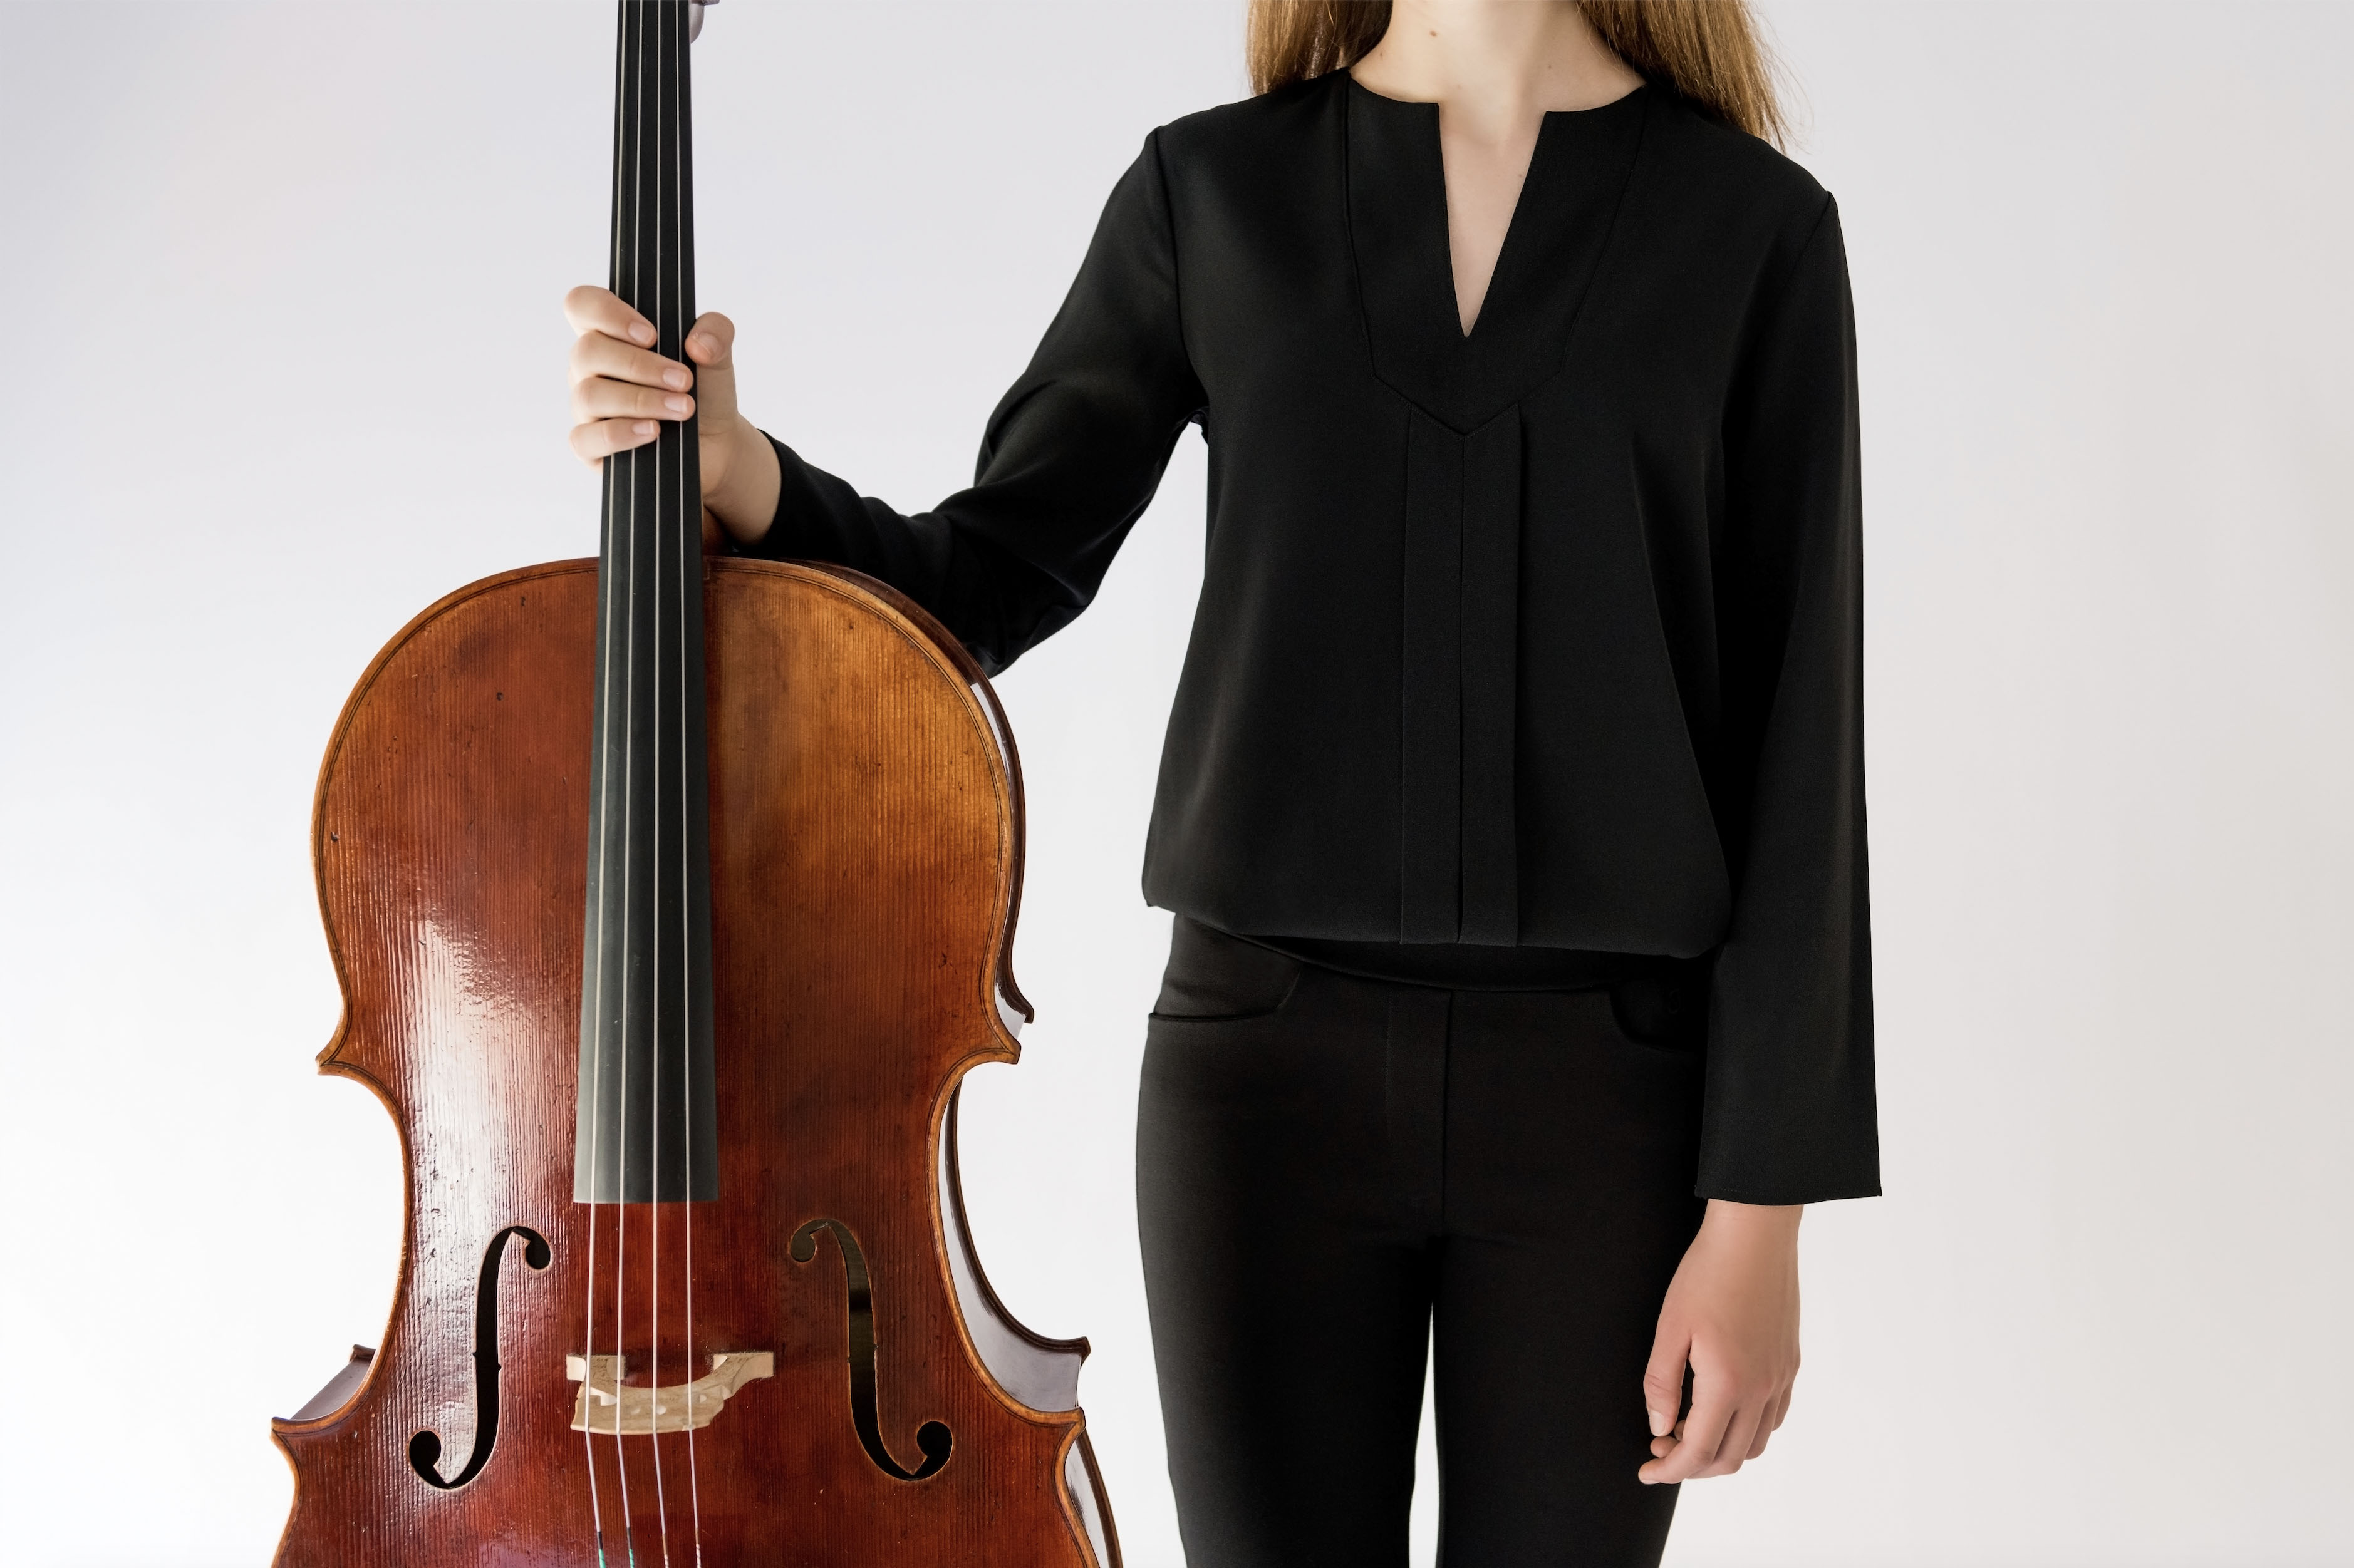 girl dressed in black holding a cello